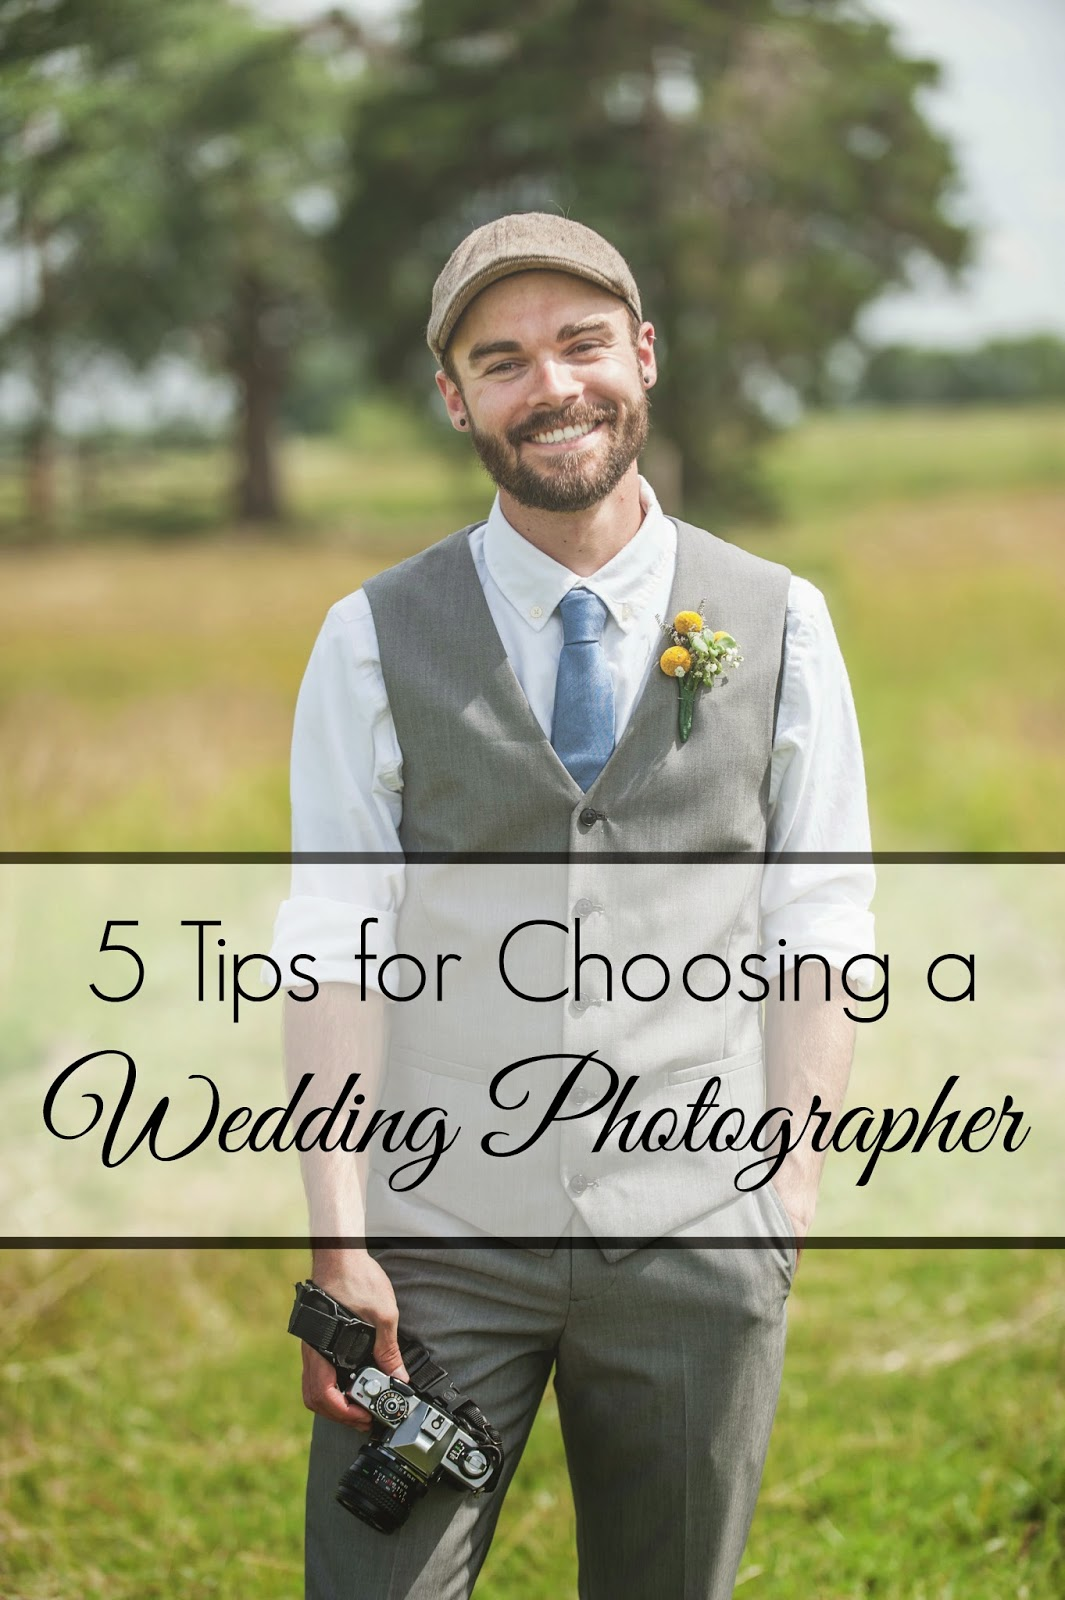 5 Tips for choosing a wedding photographer